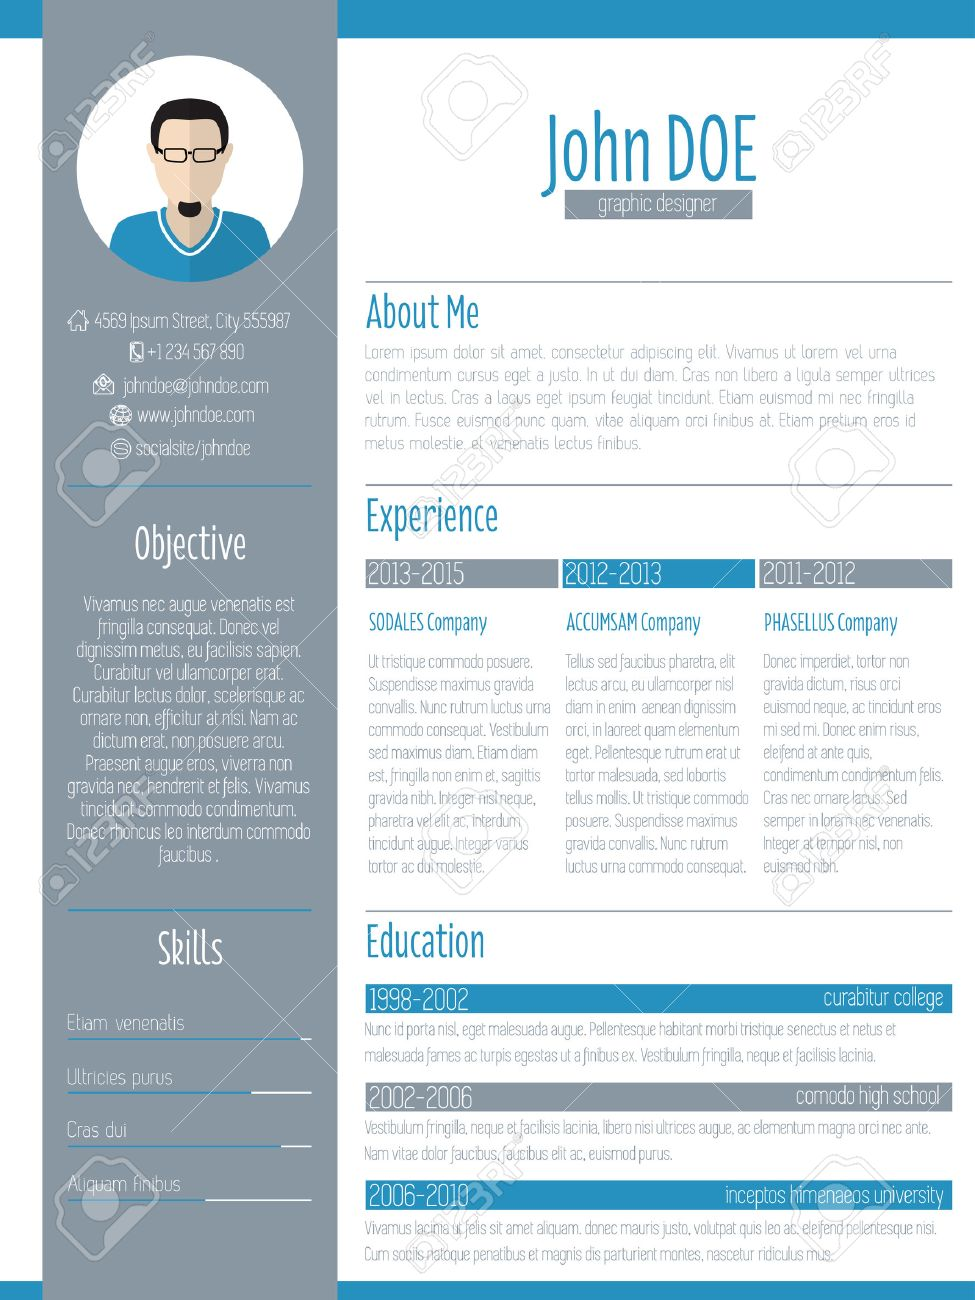 Modern resume curriculum vitae cv design with photo royalty free modern resume curriculum vitae cv design with photo stock vector 37490988 altavistaventures Images